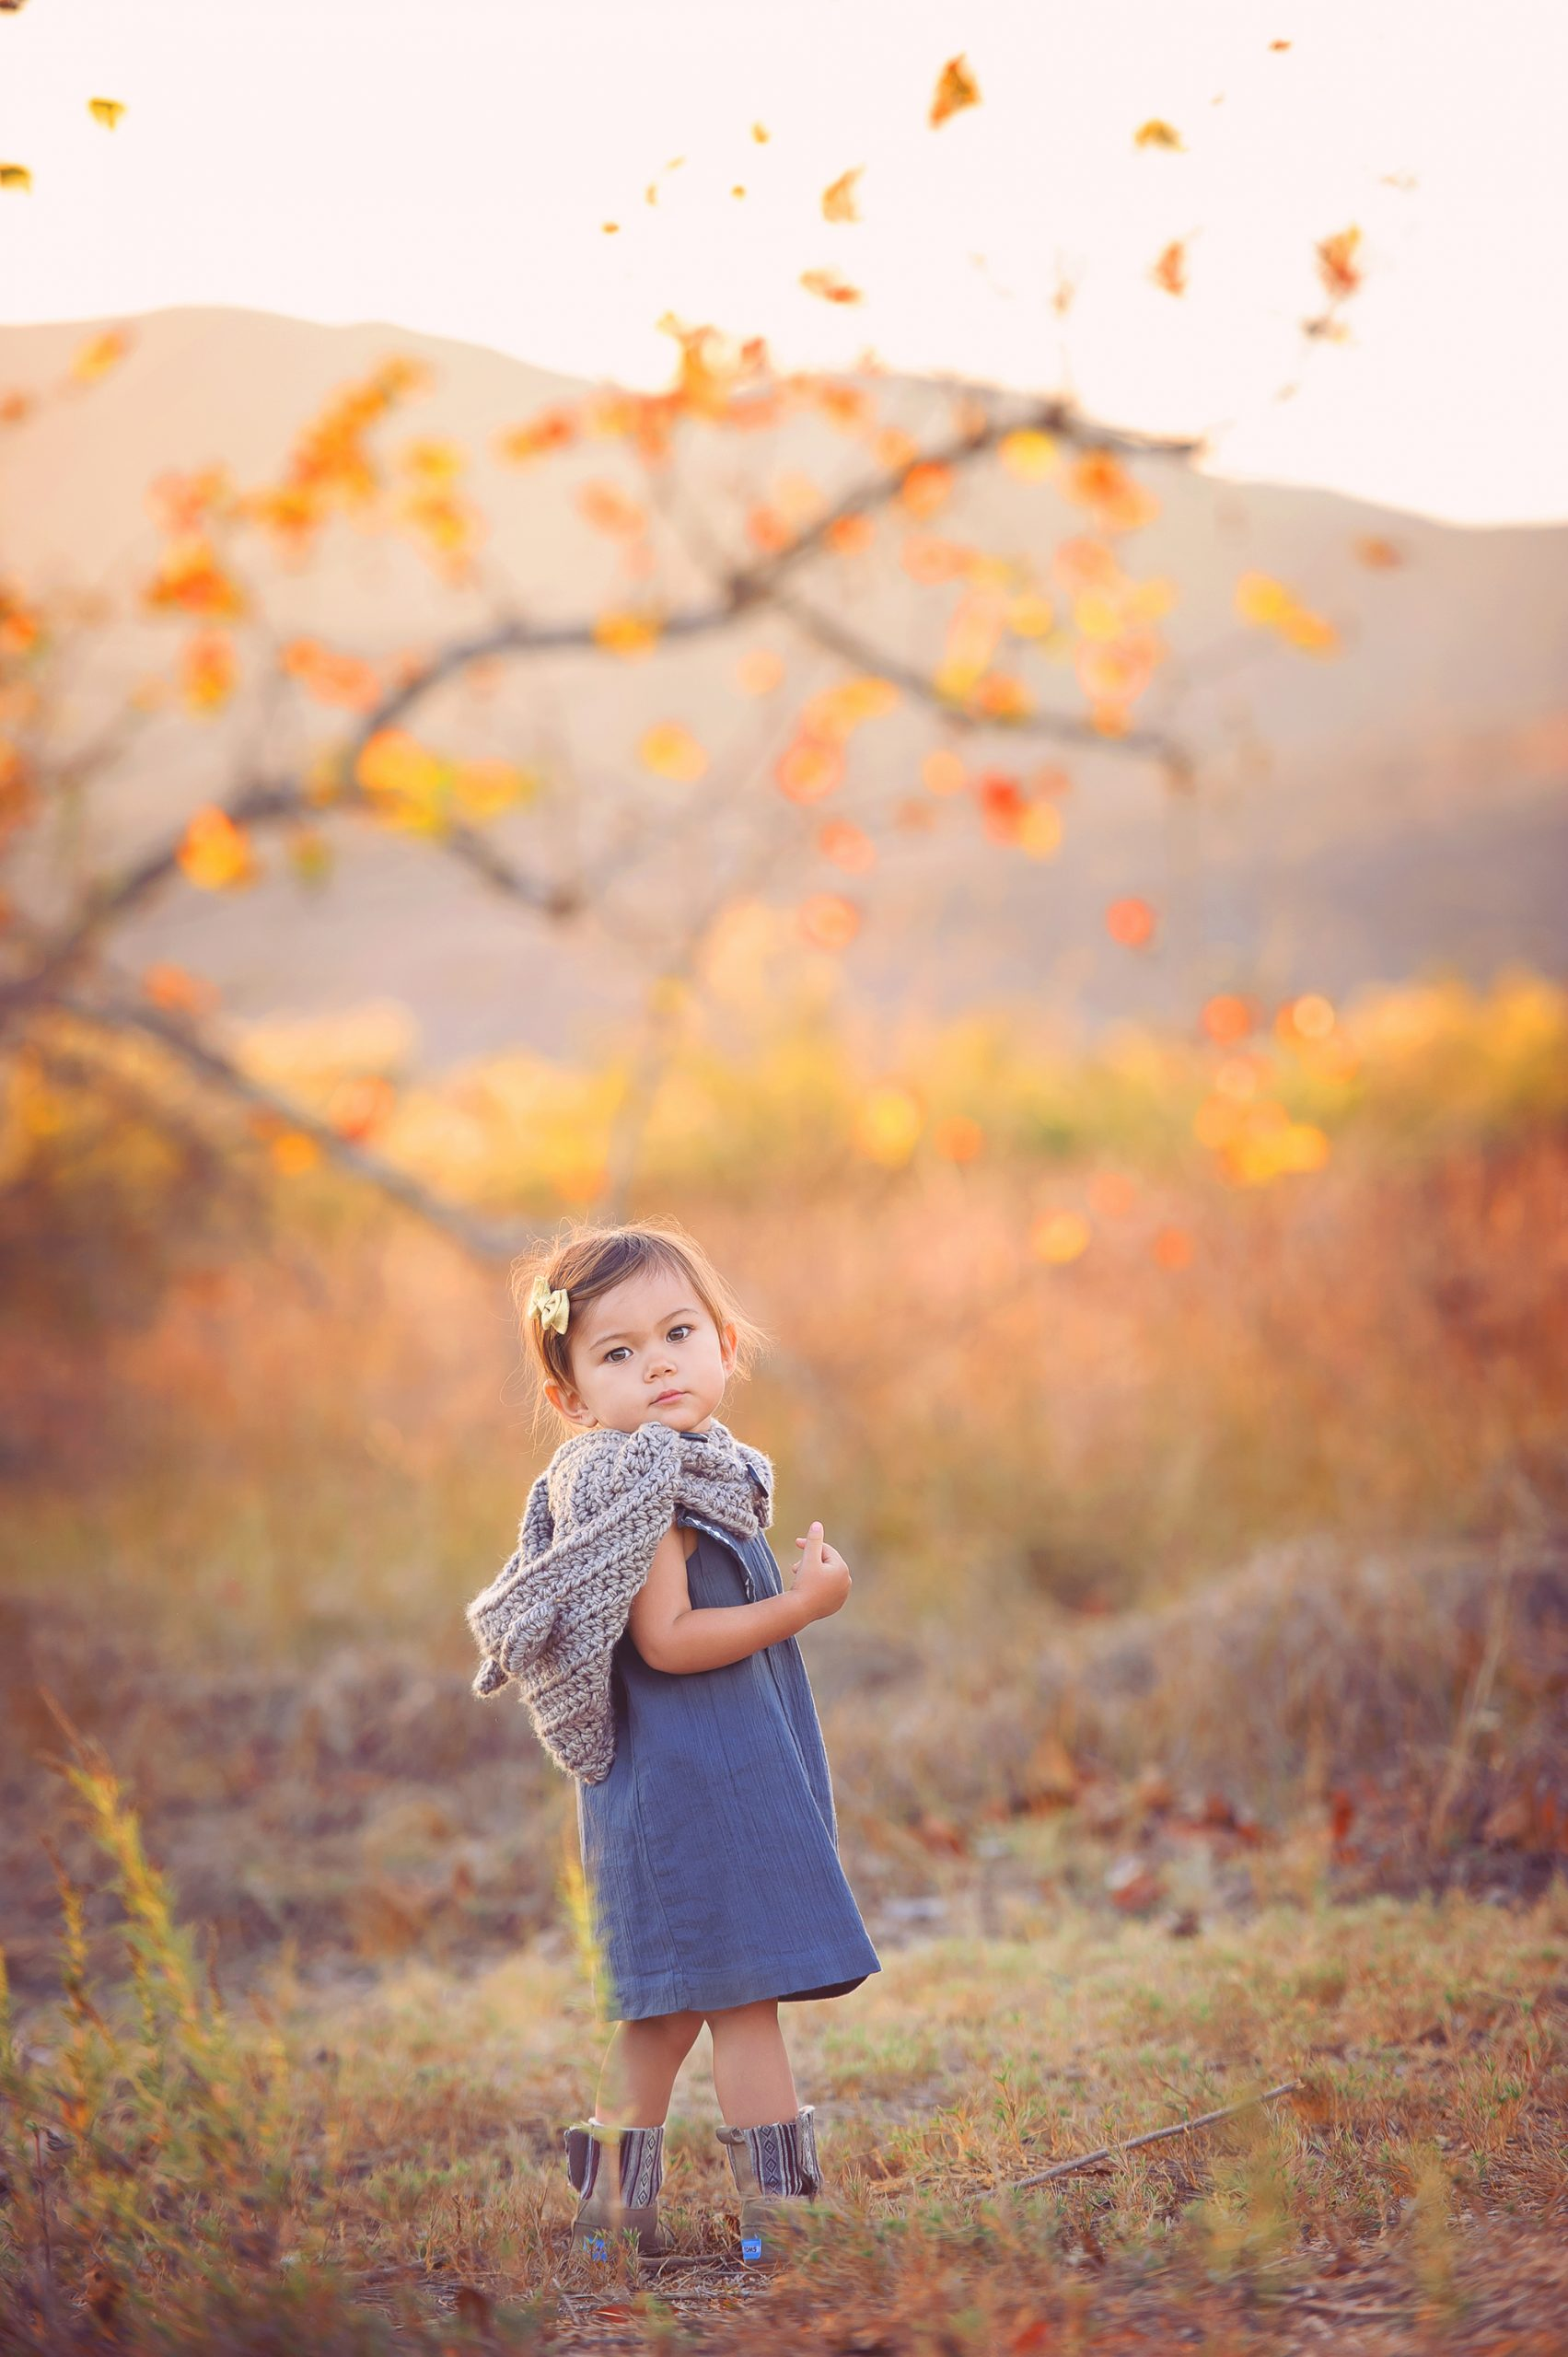 Nature location ideas for baby and family photography in San Diego, CA